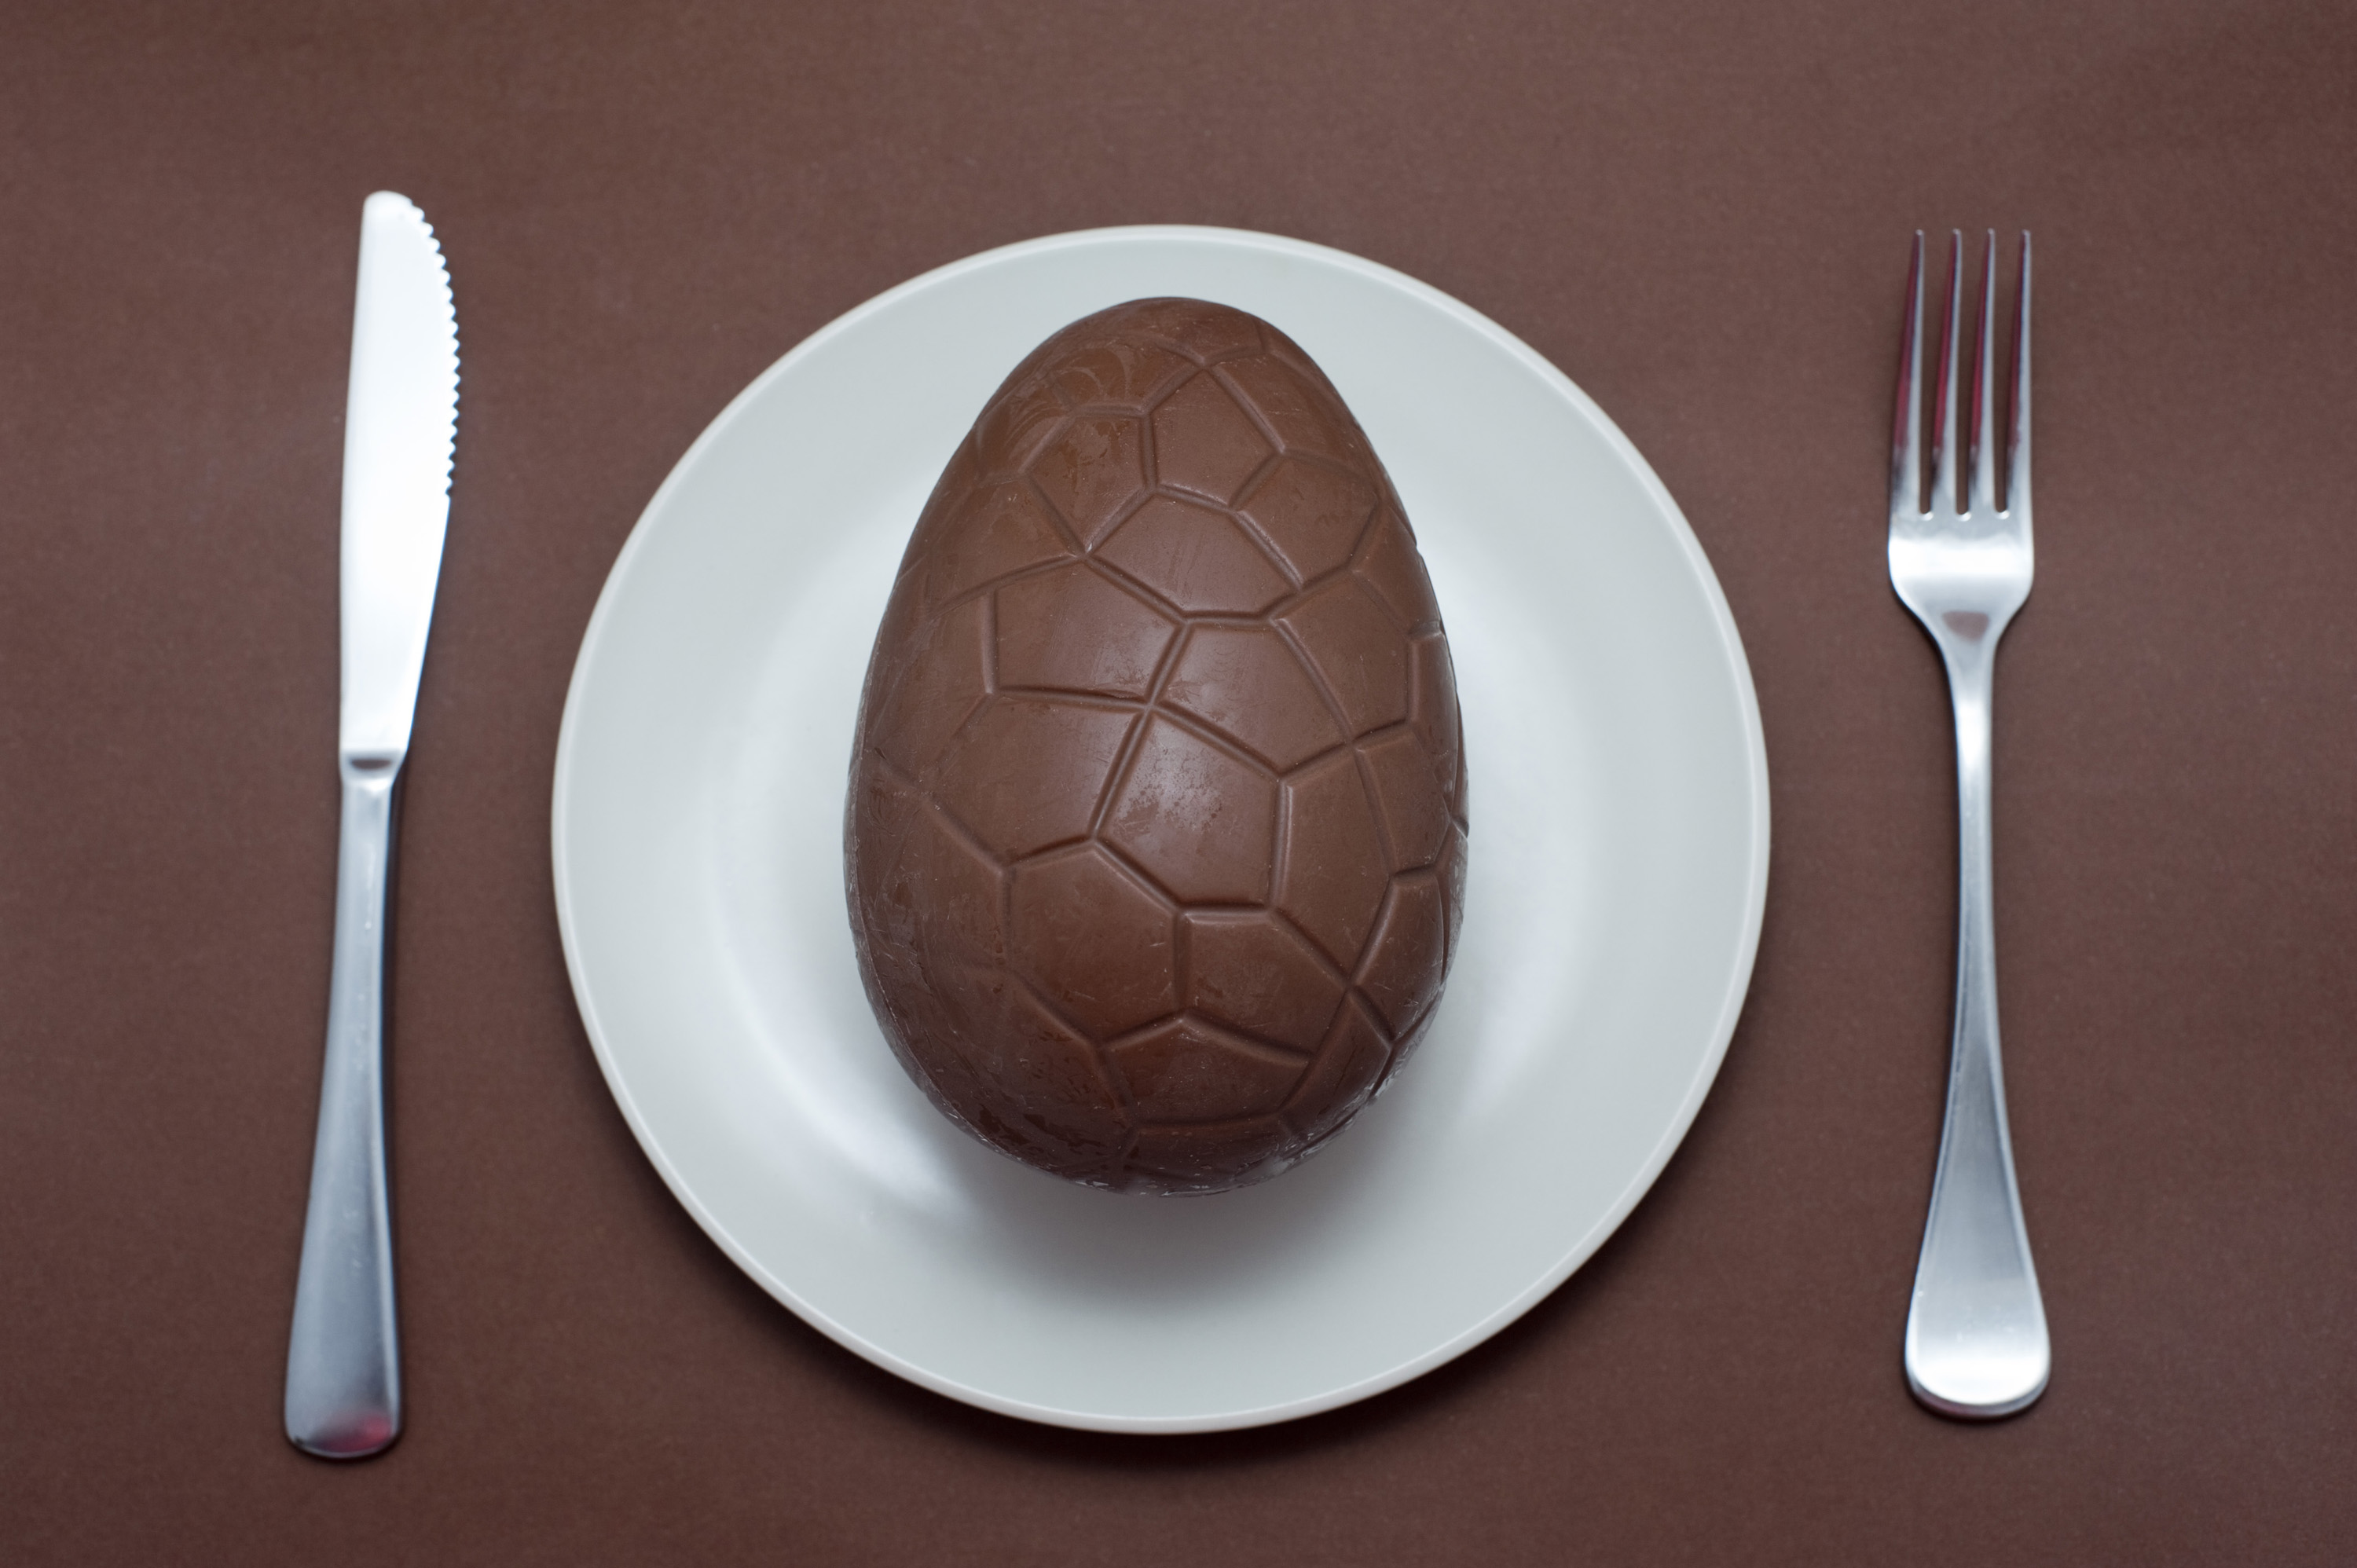 easter_egg_concept.jpg - Place setting with a chocolate Easter egg served for dinner on a plate with cutlery over a matching brown background